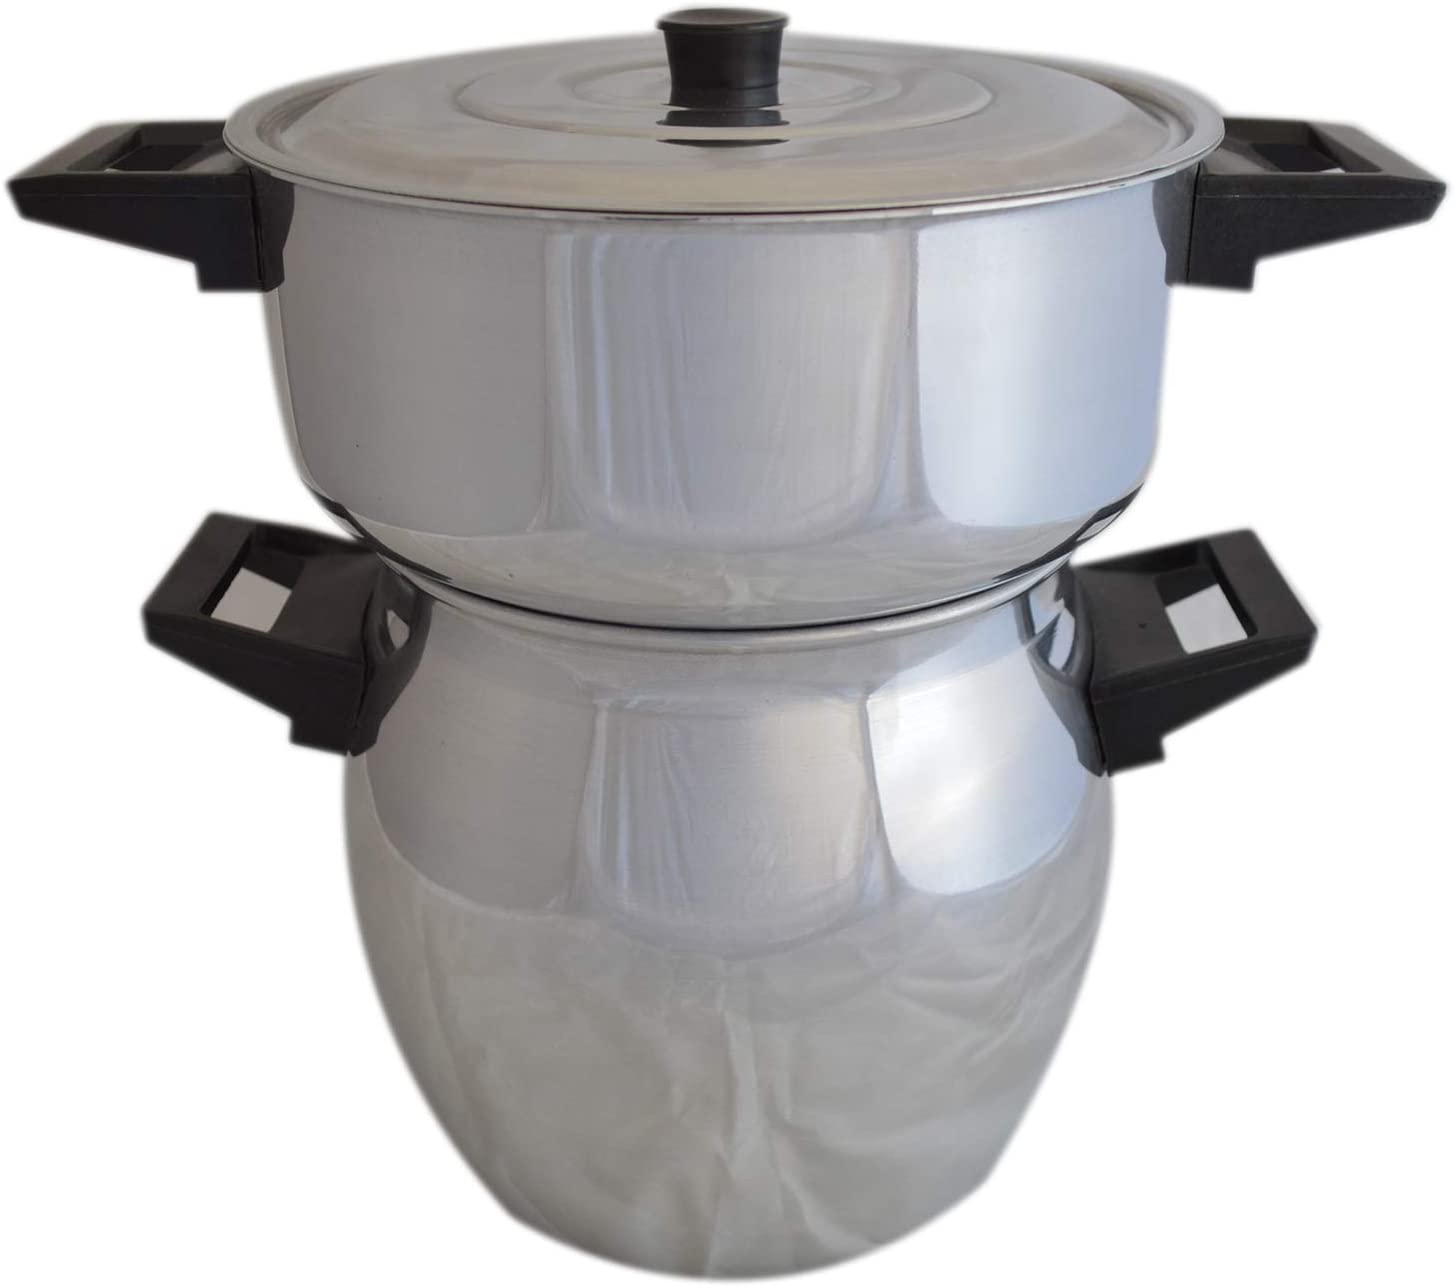 Couscoussier 6 Liter Moroccan Steamer Pot Imported from Morocco Couscous Cooker Pot